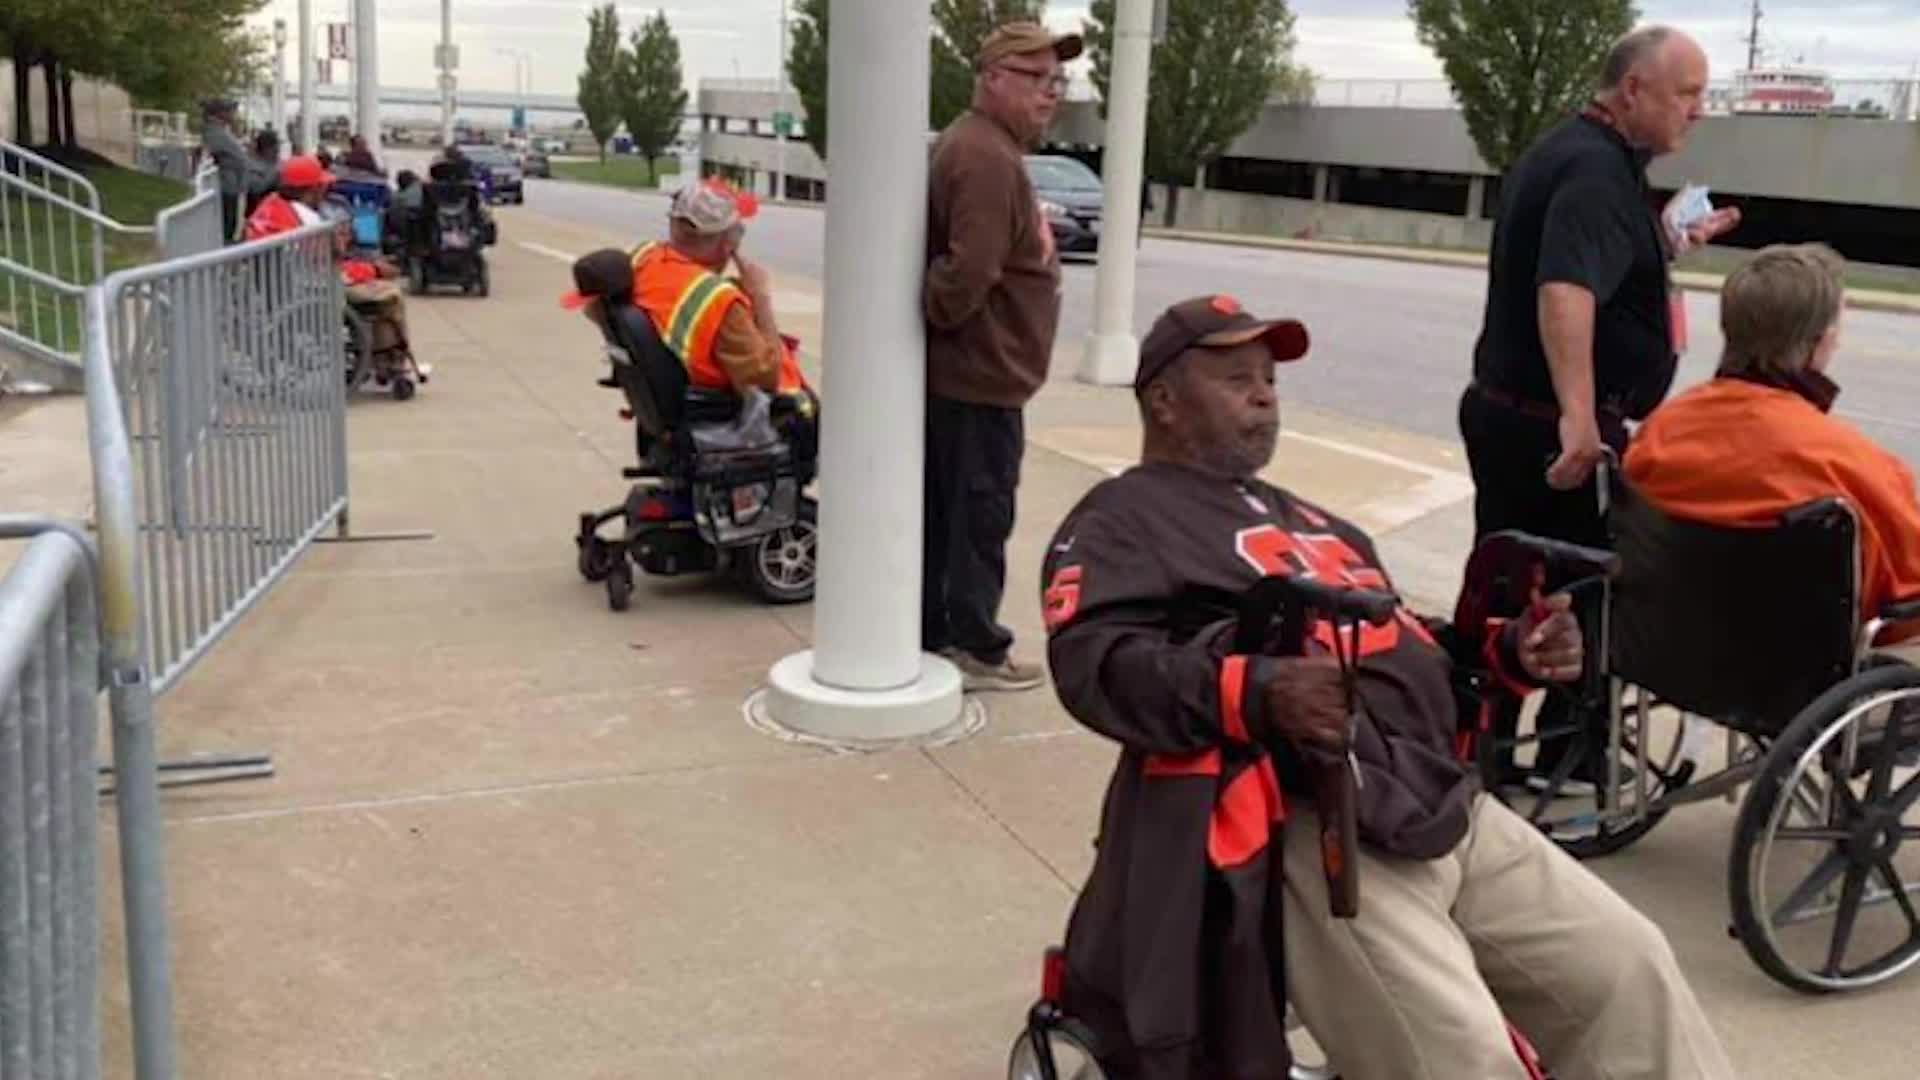 Browns fans with disabilities concerns